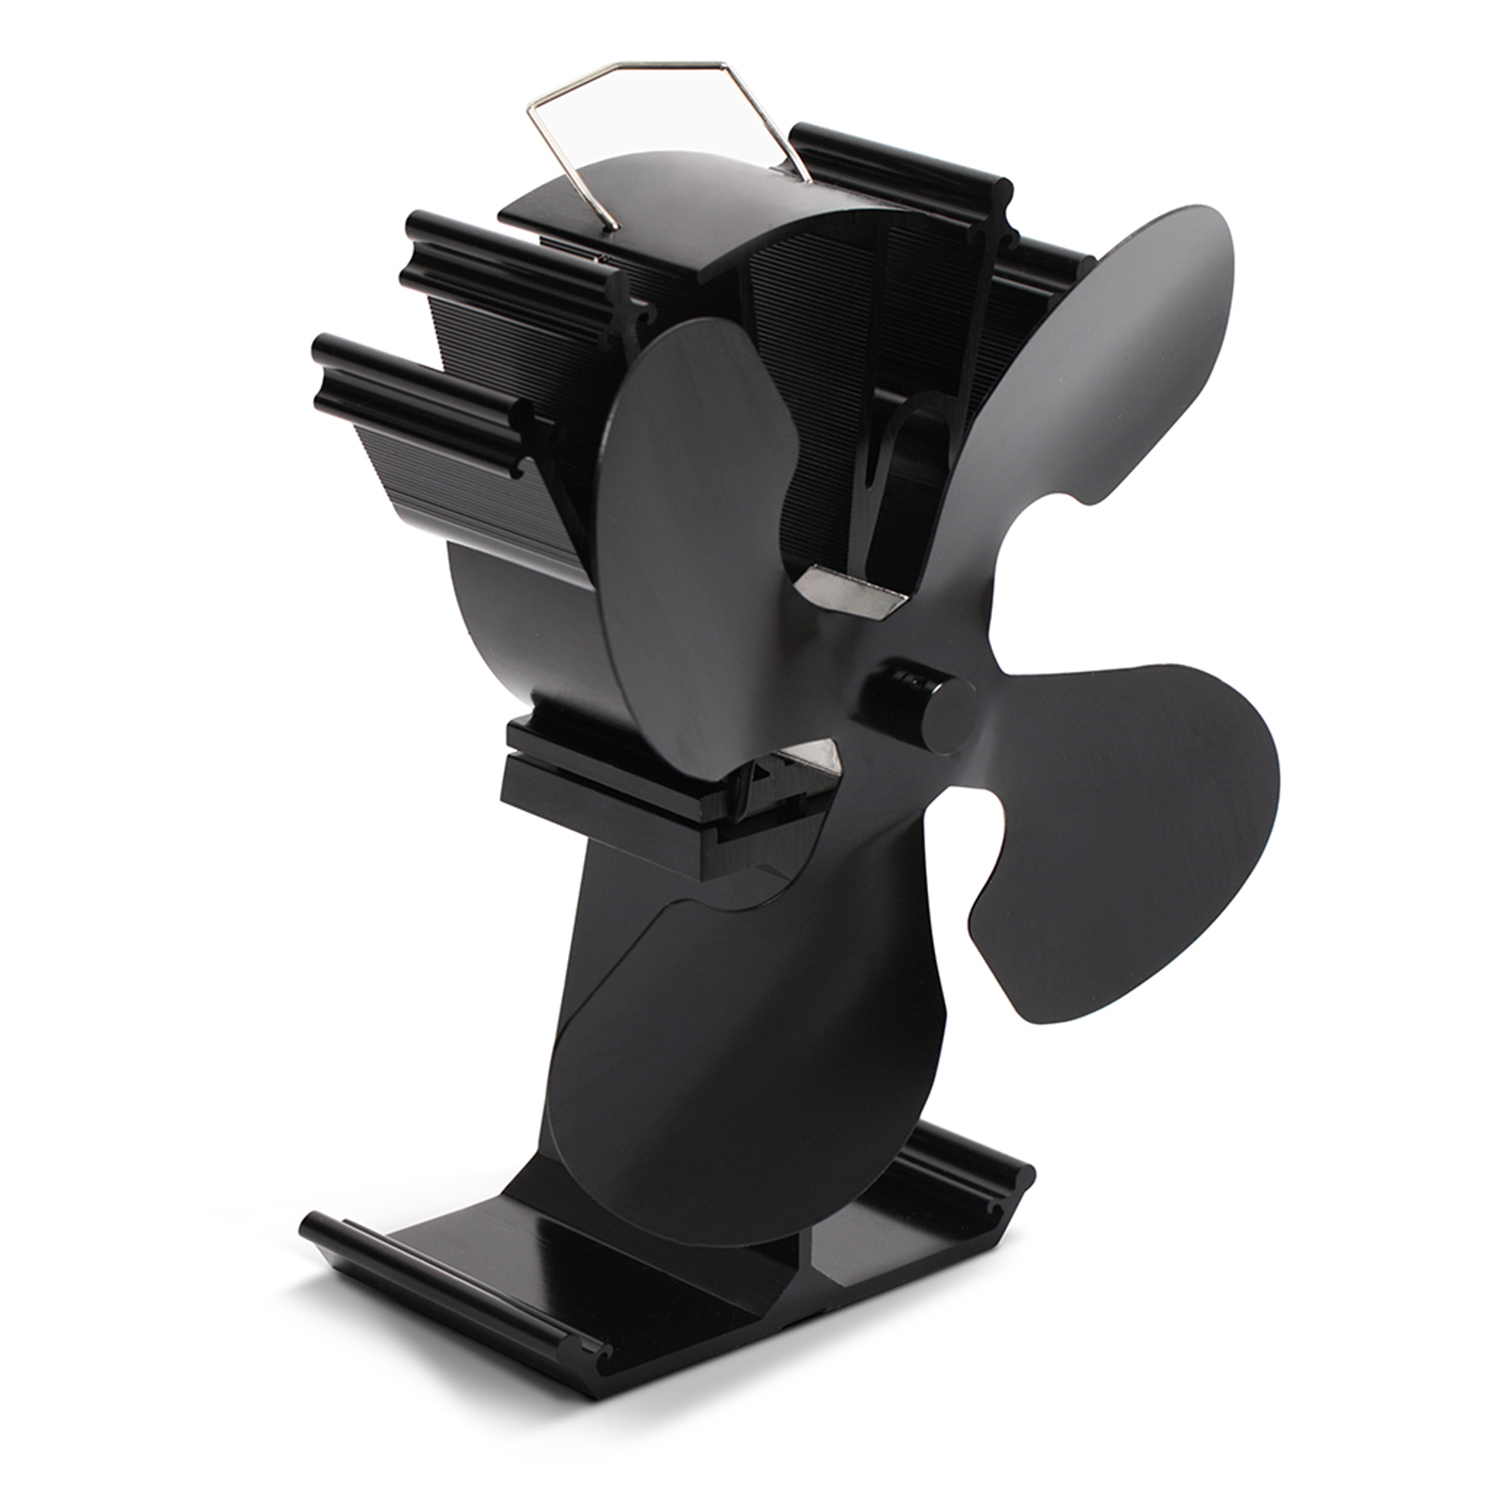 kenley ventilateur fan cologique pour po le bois gaz. Black Bedroom Furniture Sets. Home Design Ideas